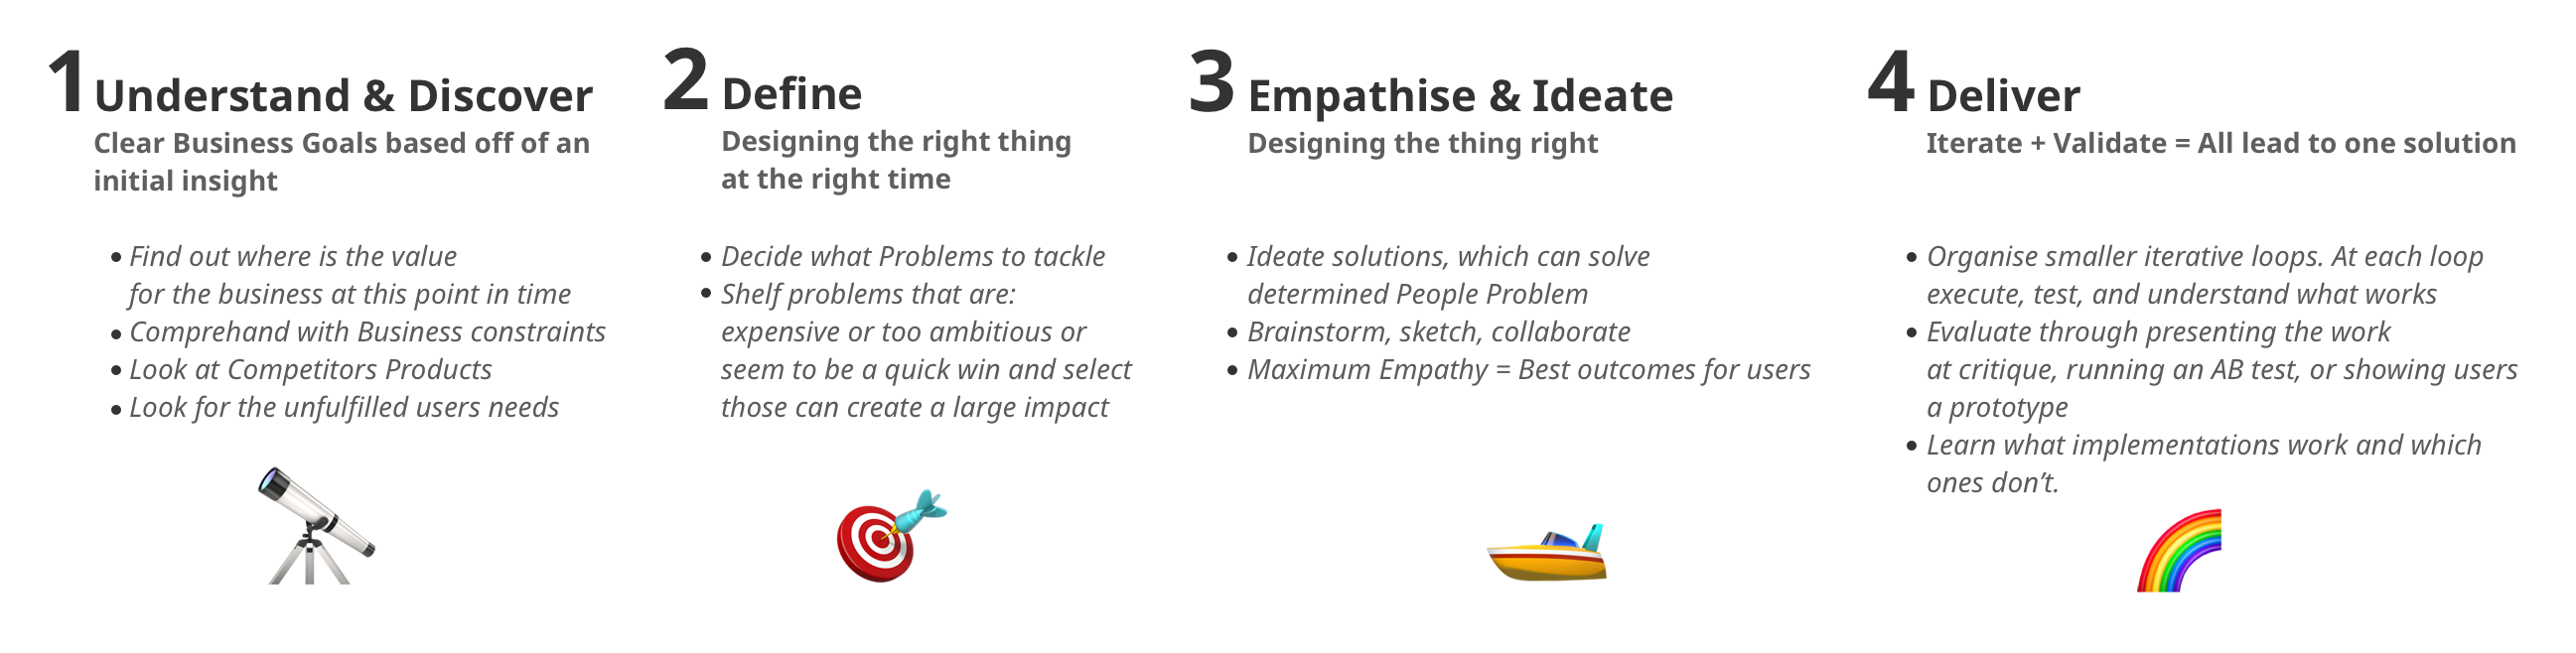 A design process defines every designer's journey to solve wicked problems